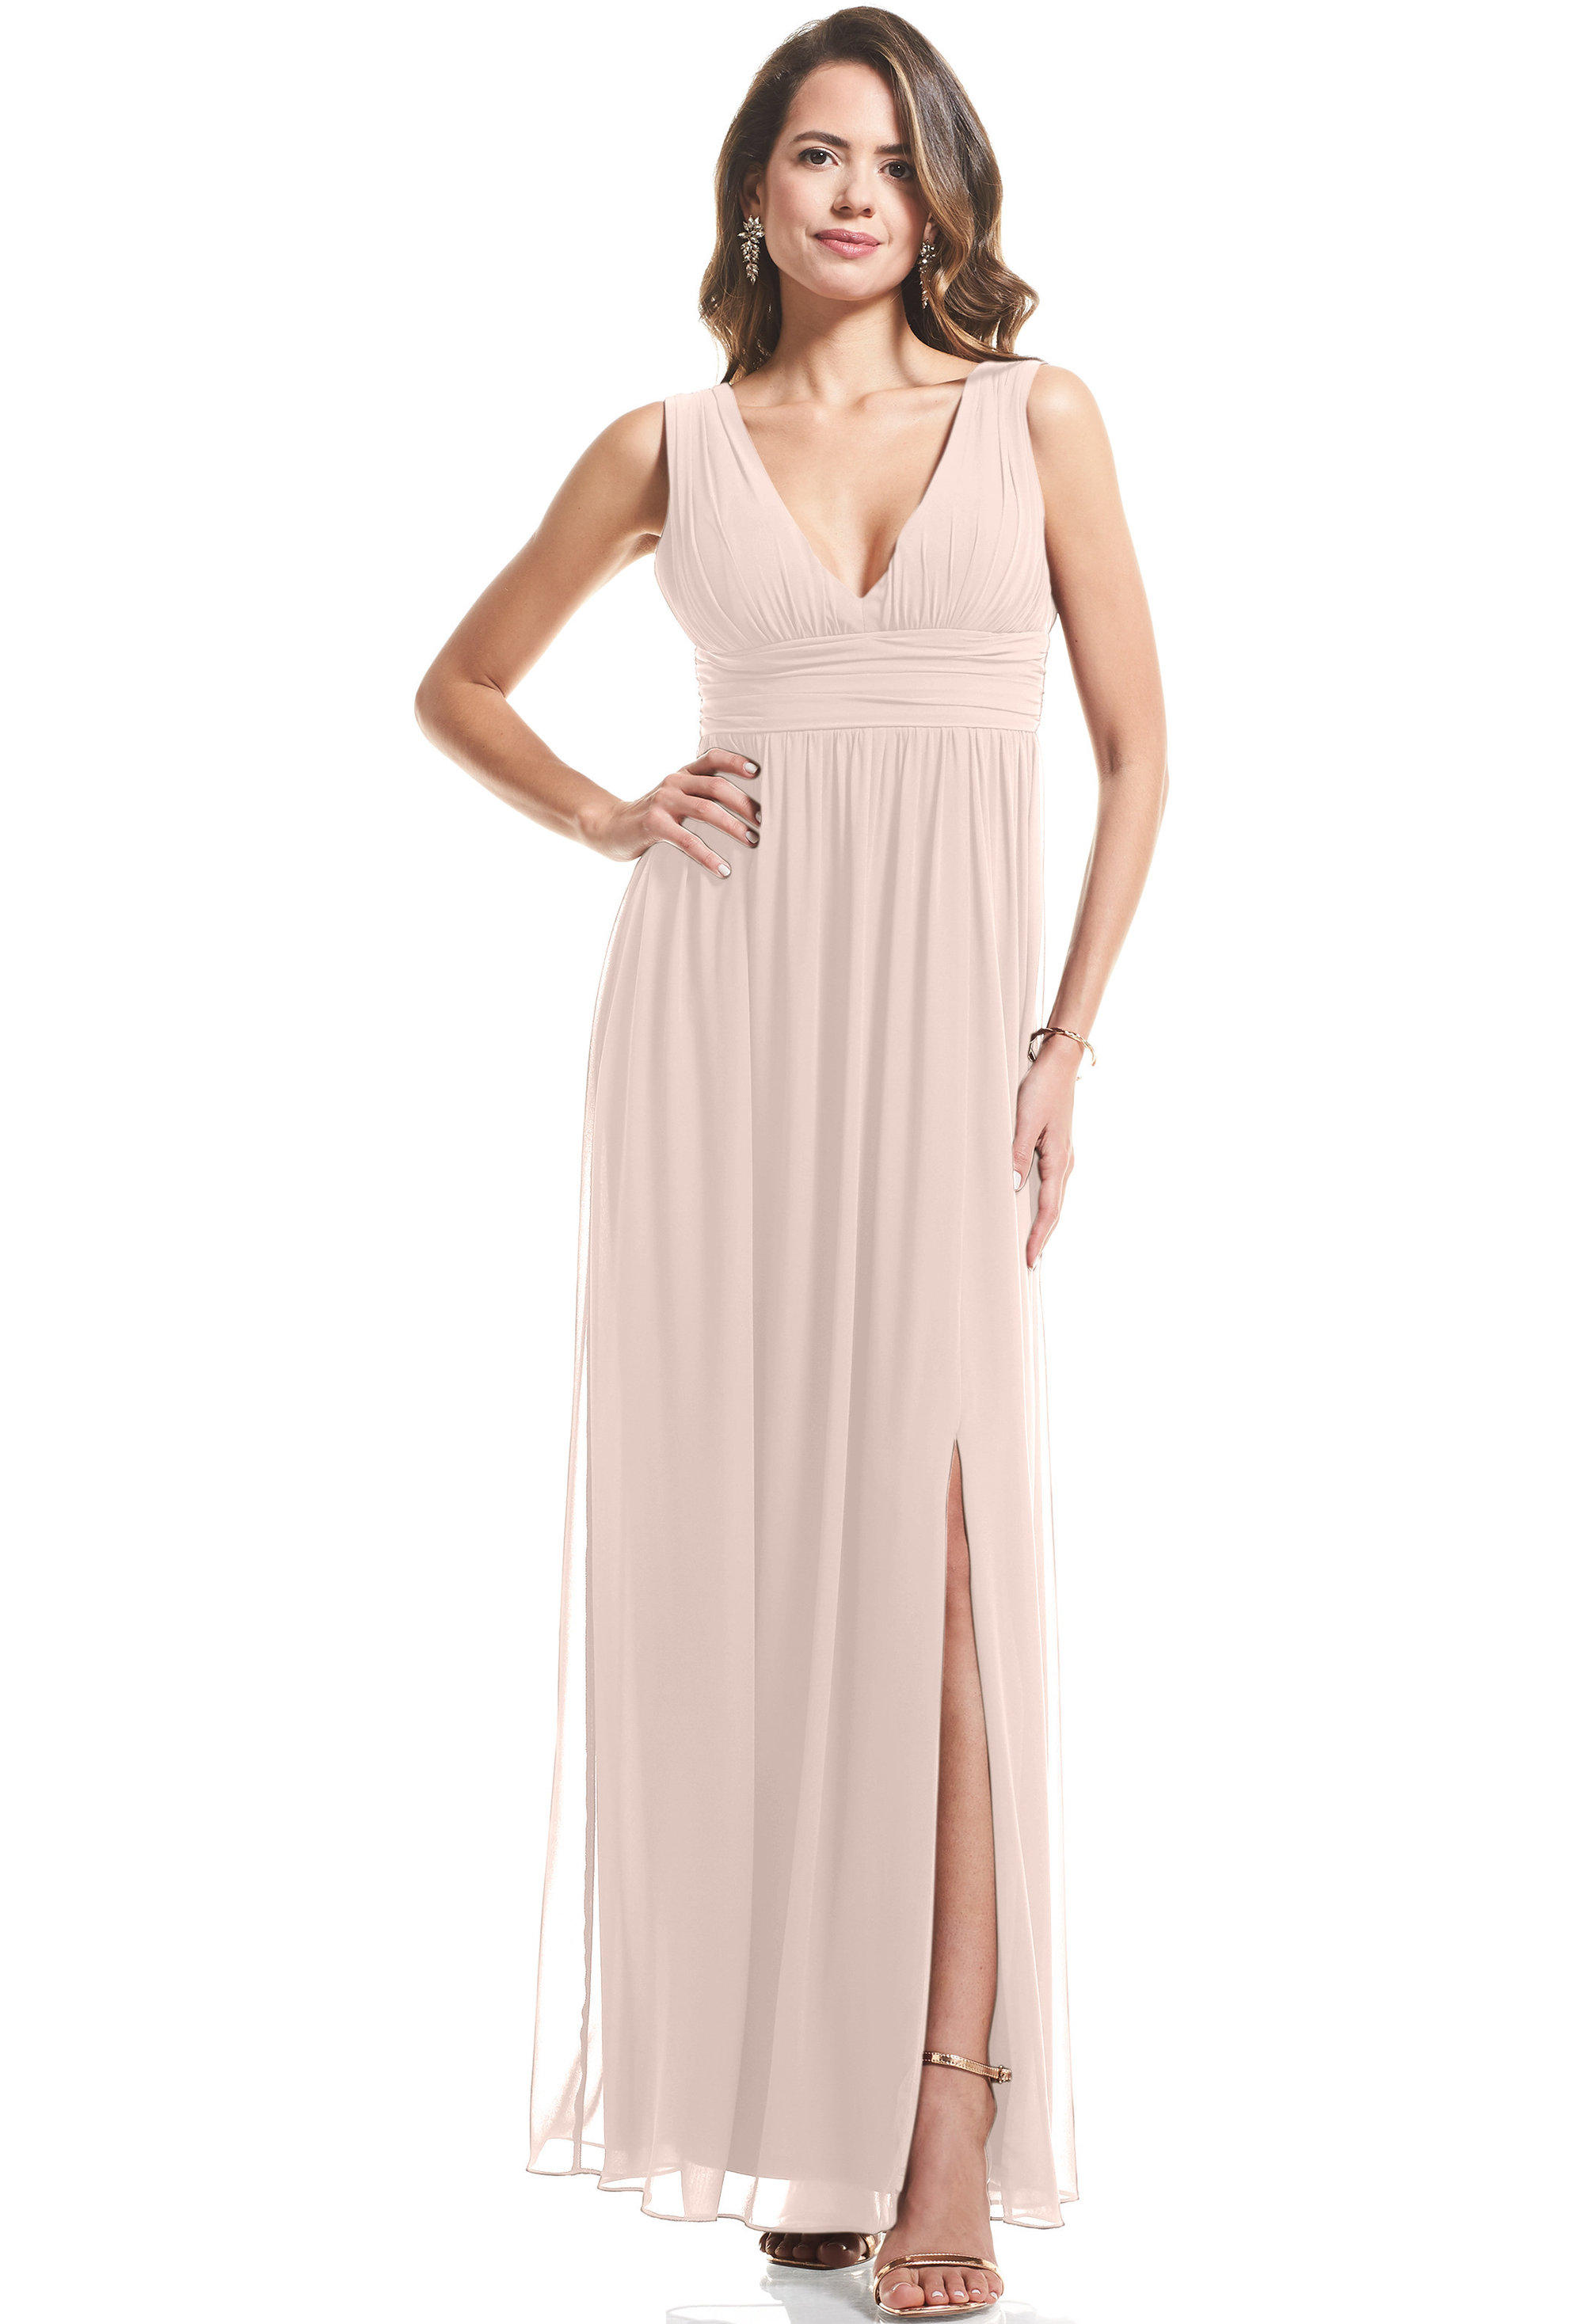 Bill Levkoff SHELL PINK Chiffon V-neck A-Line gown, $89.00 Front